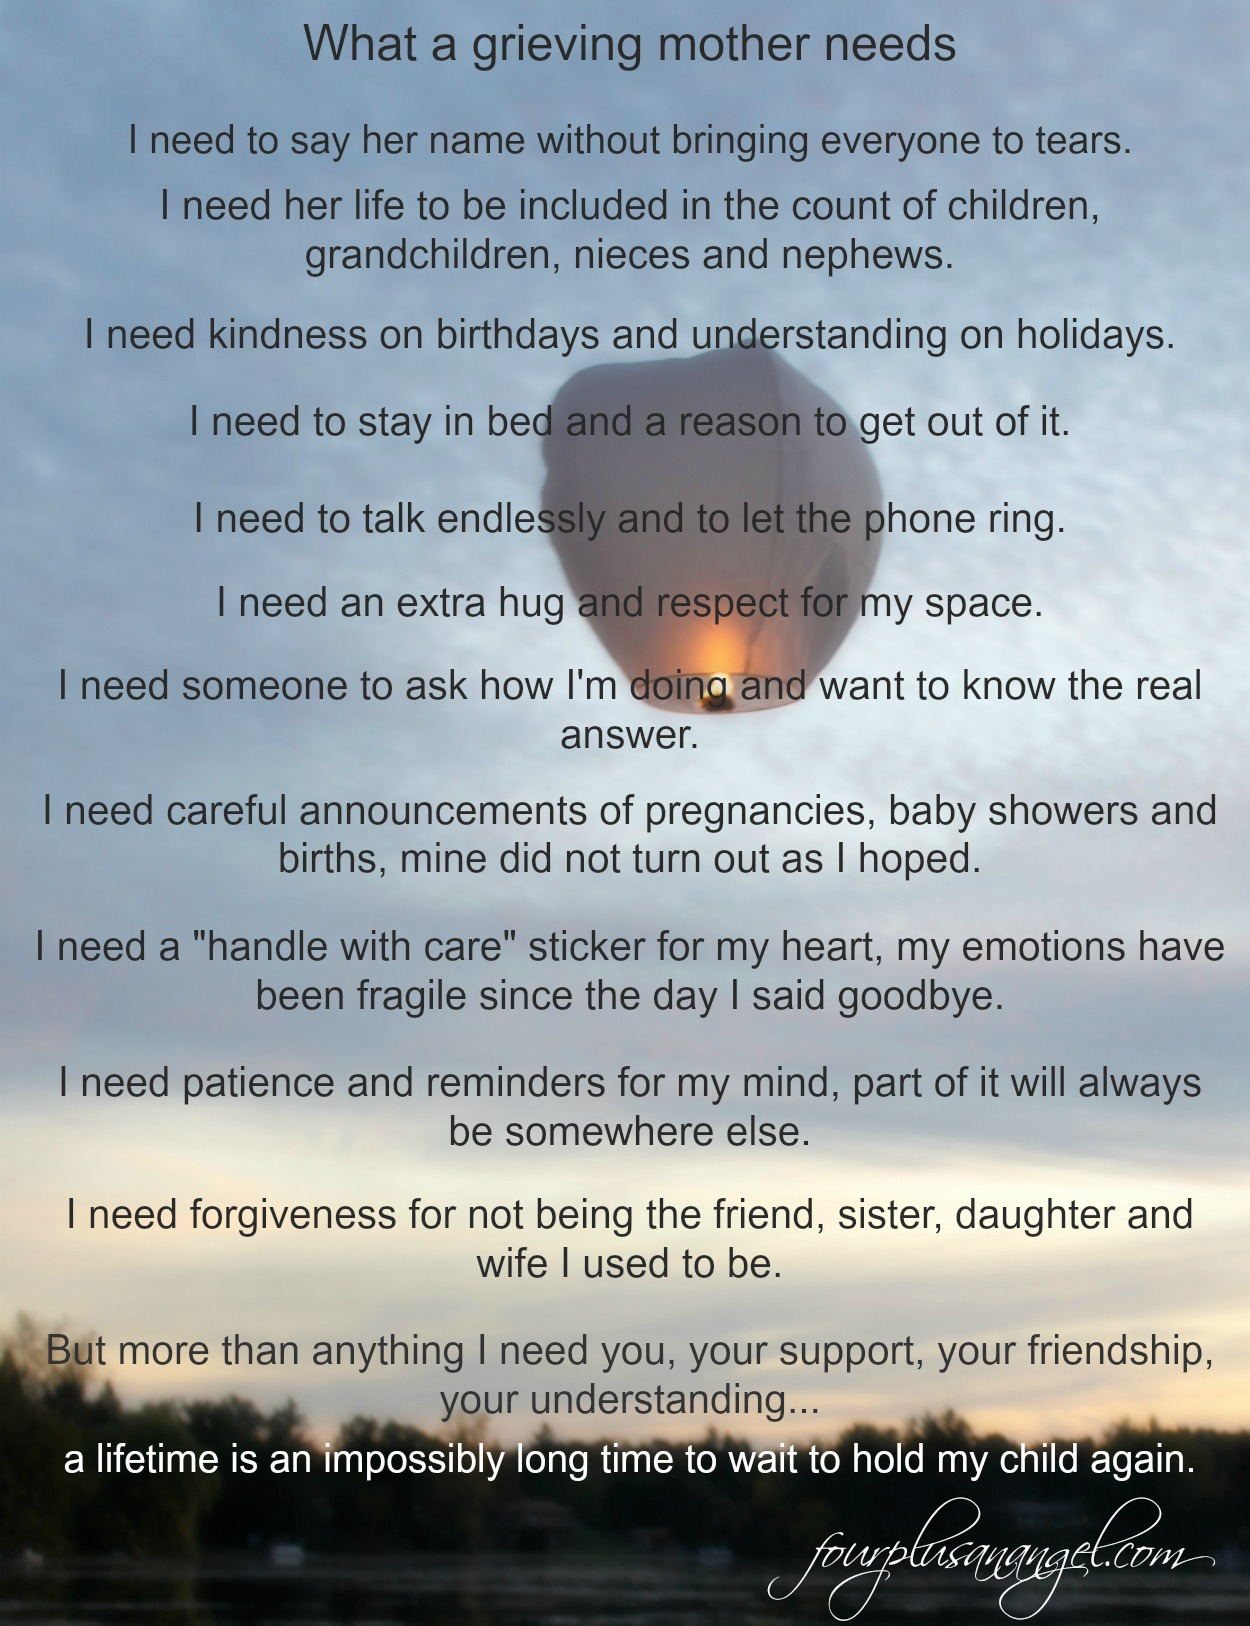 What I Need As A Grieving Mother Four Plus An Angel